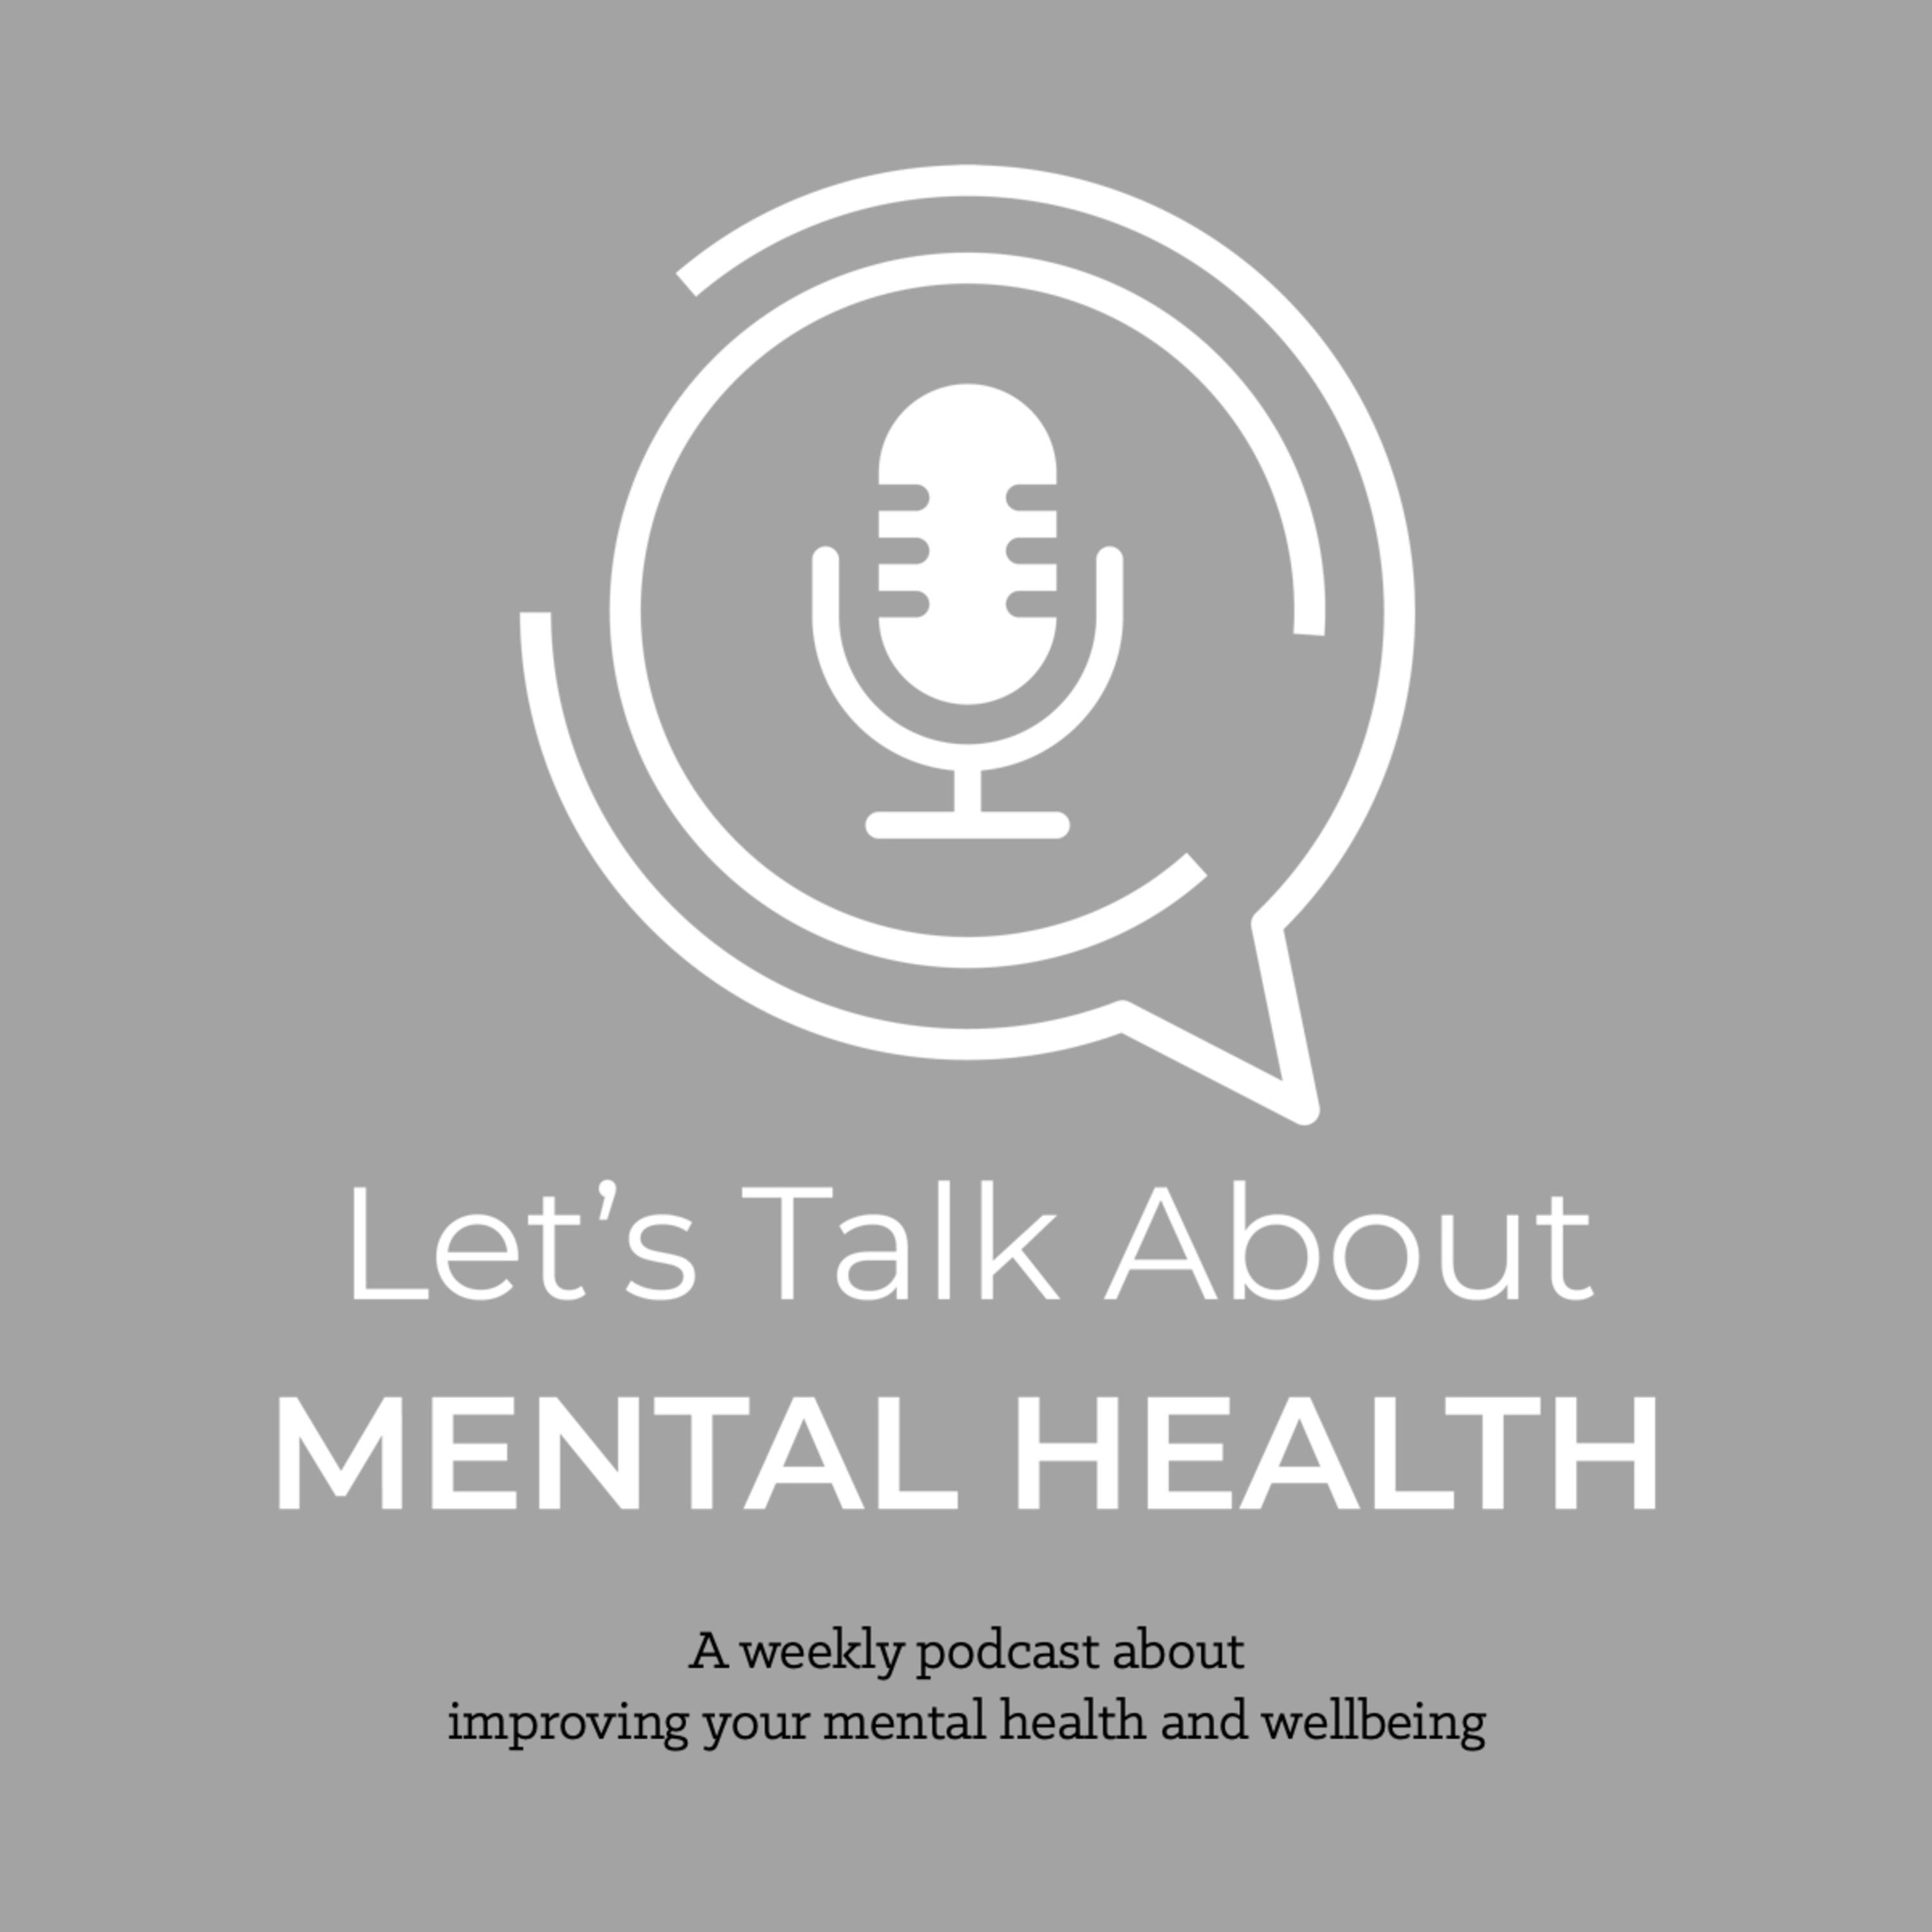 Let's Talk About Mental Health - Let's Talk About... Growth